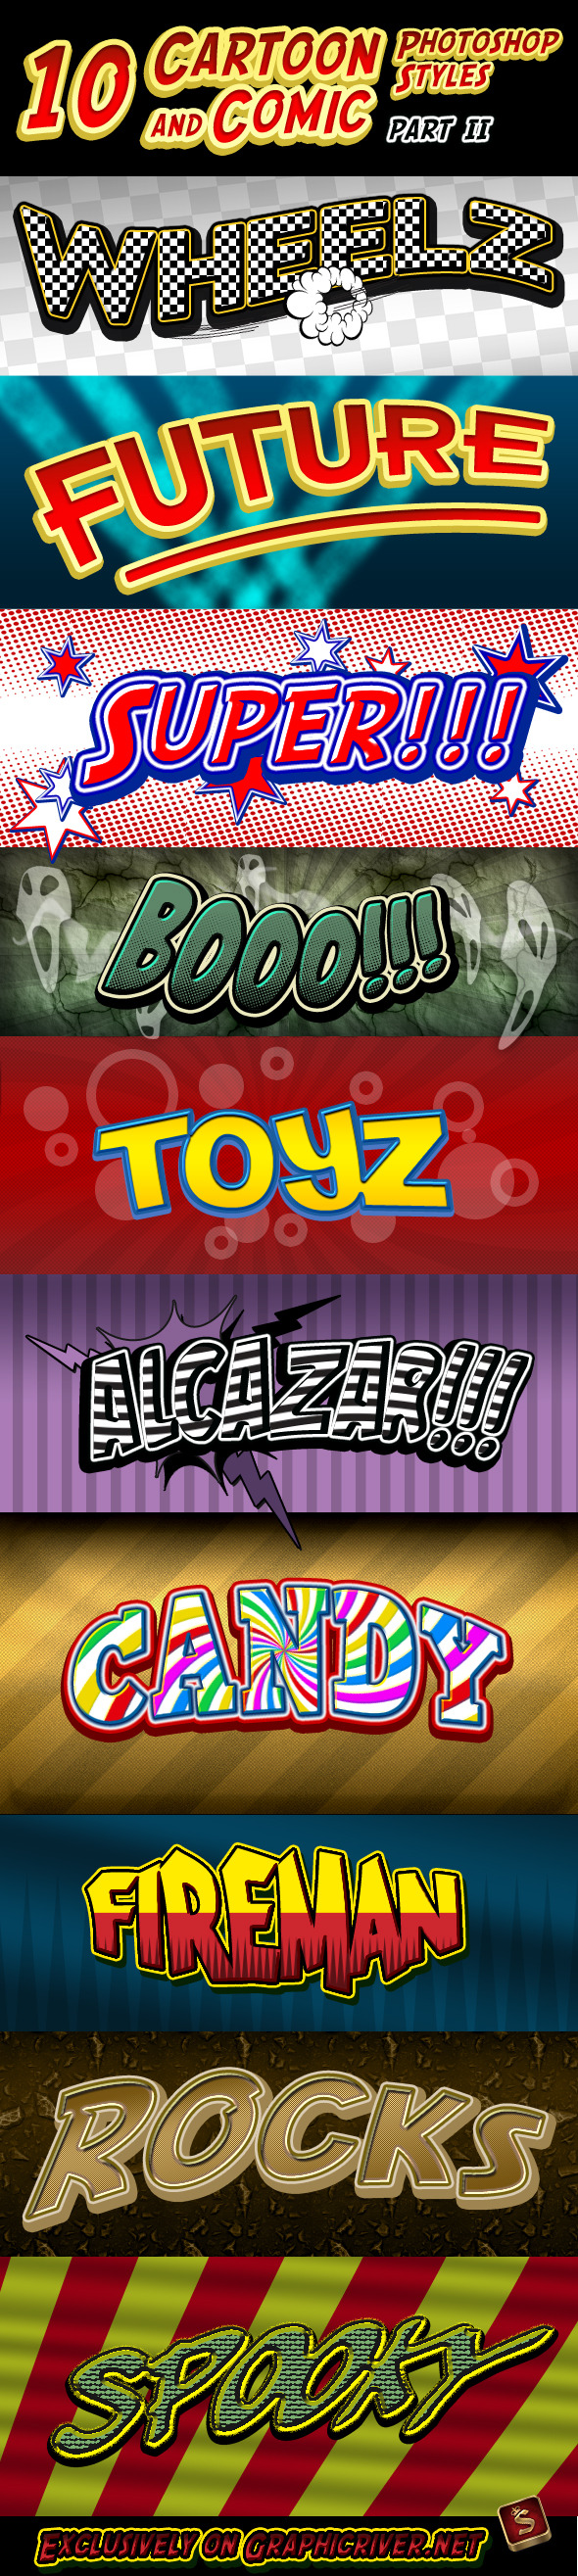 Cartoon and Comic Book Styles - Part 2 - Text Effects Styles